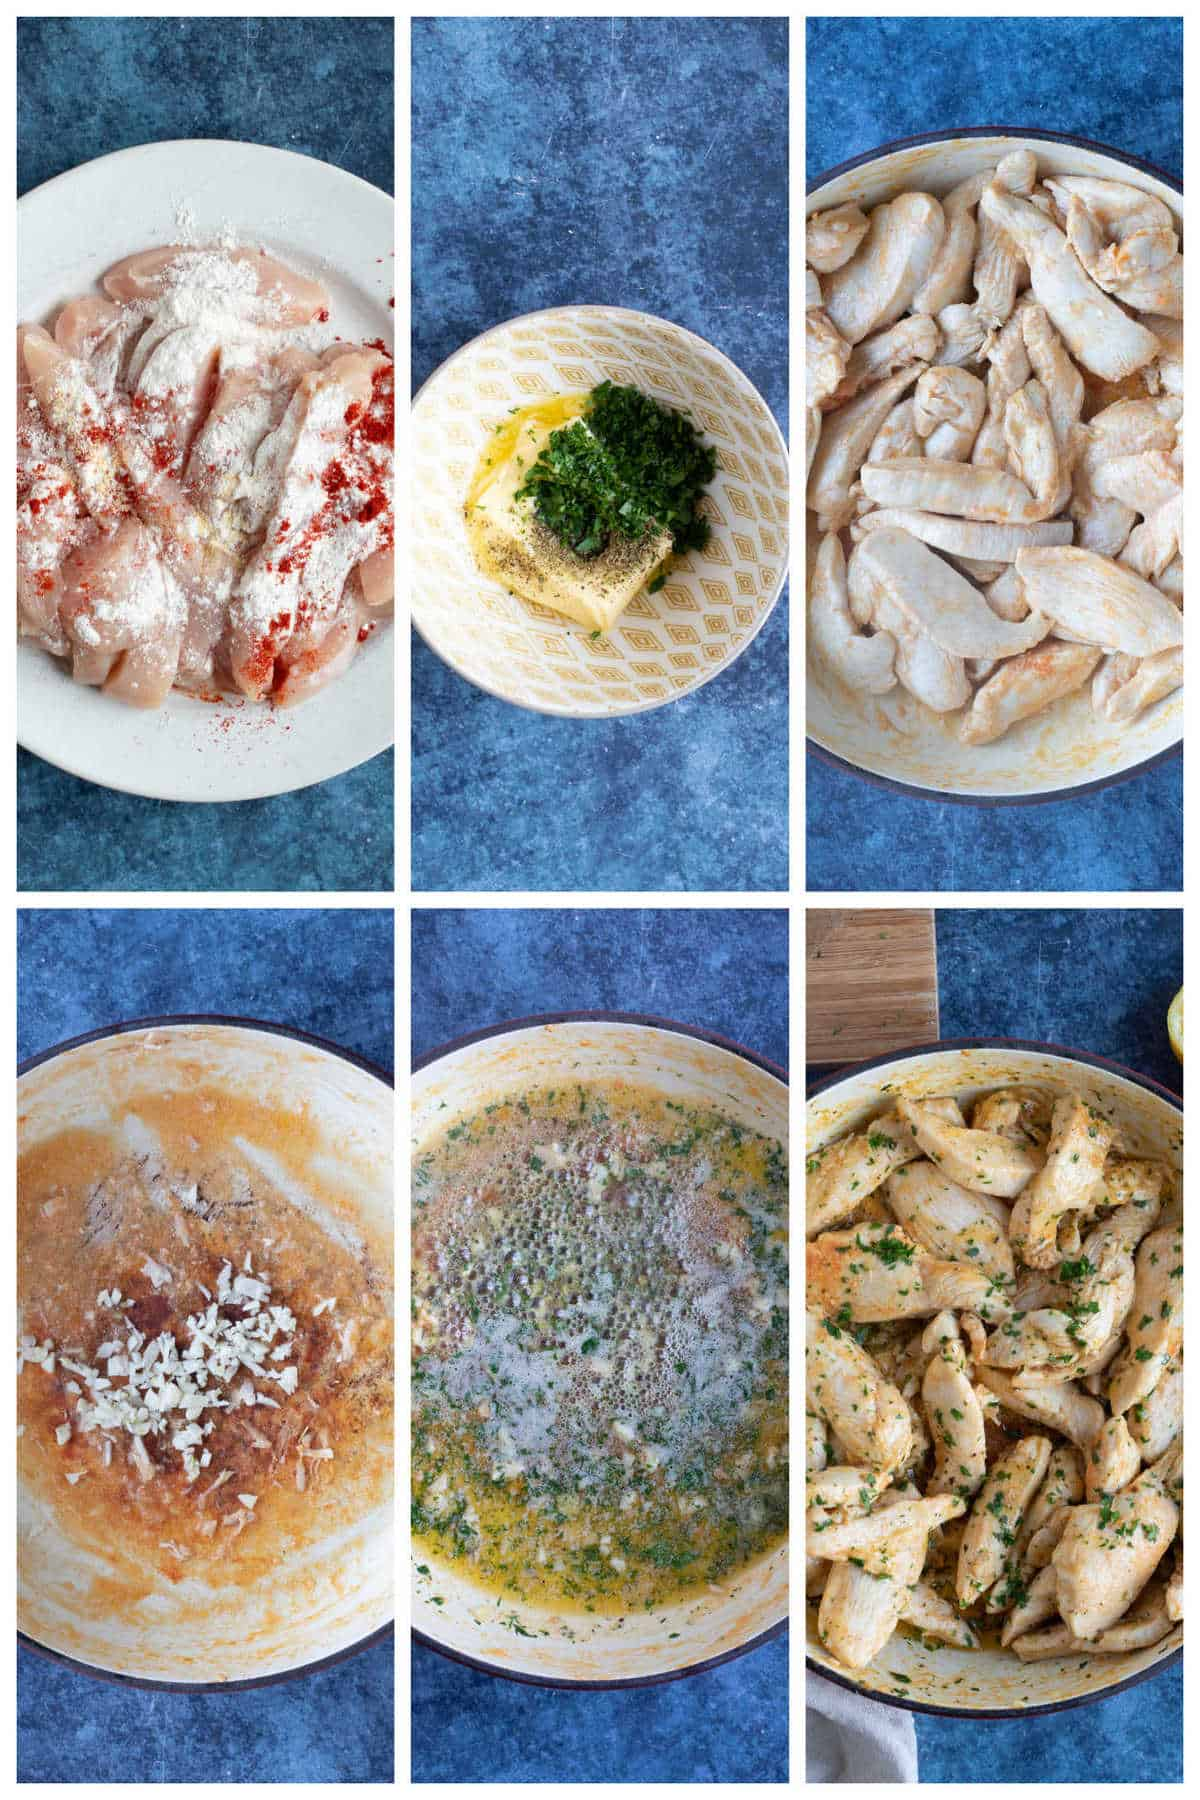 Step by step photo instruction collage for making garlic butter chicken.